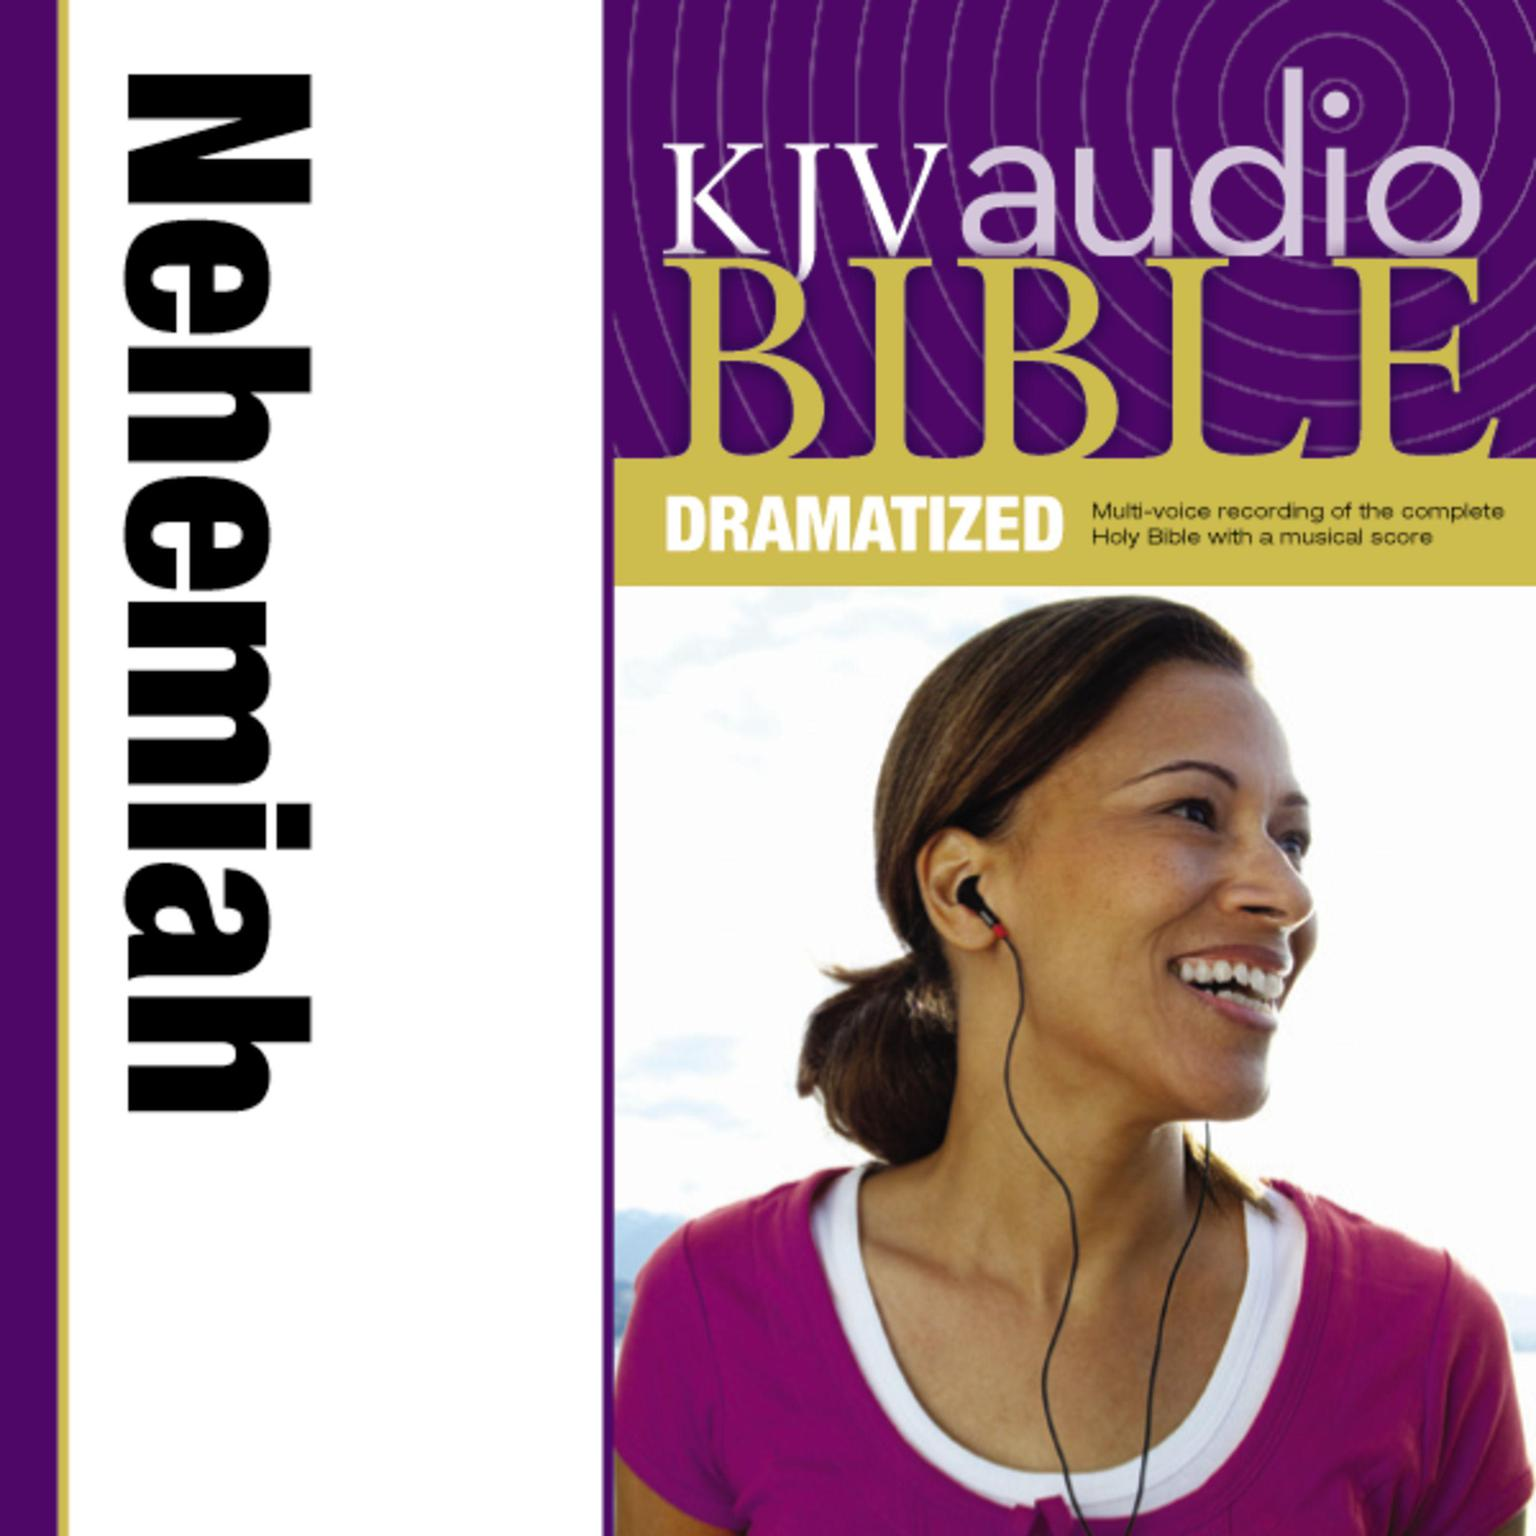 Printable KJV, Audio Bible, Dramatized: Nehemiah, Audio Download Audiobook Cover Art